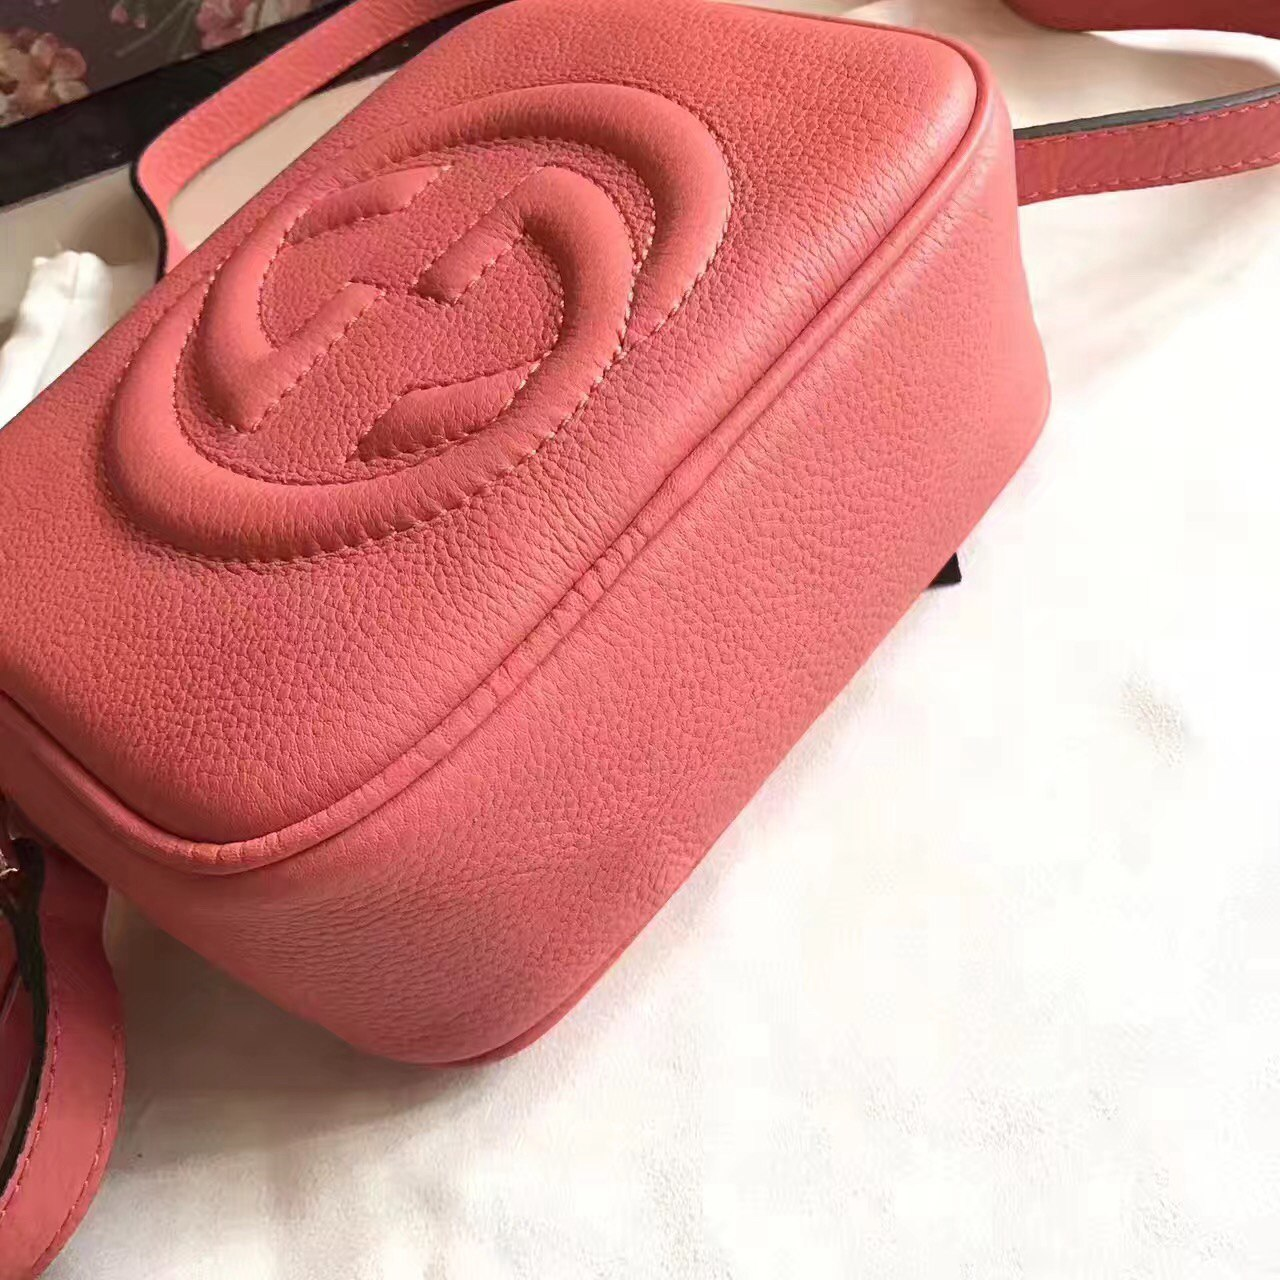 Сумка Soho disco bag Gucci 51501